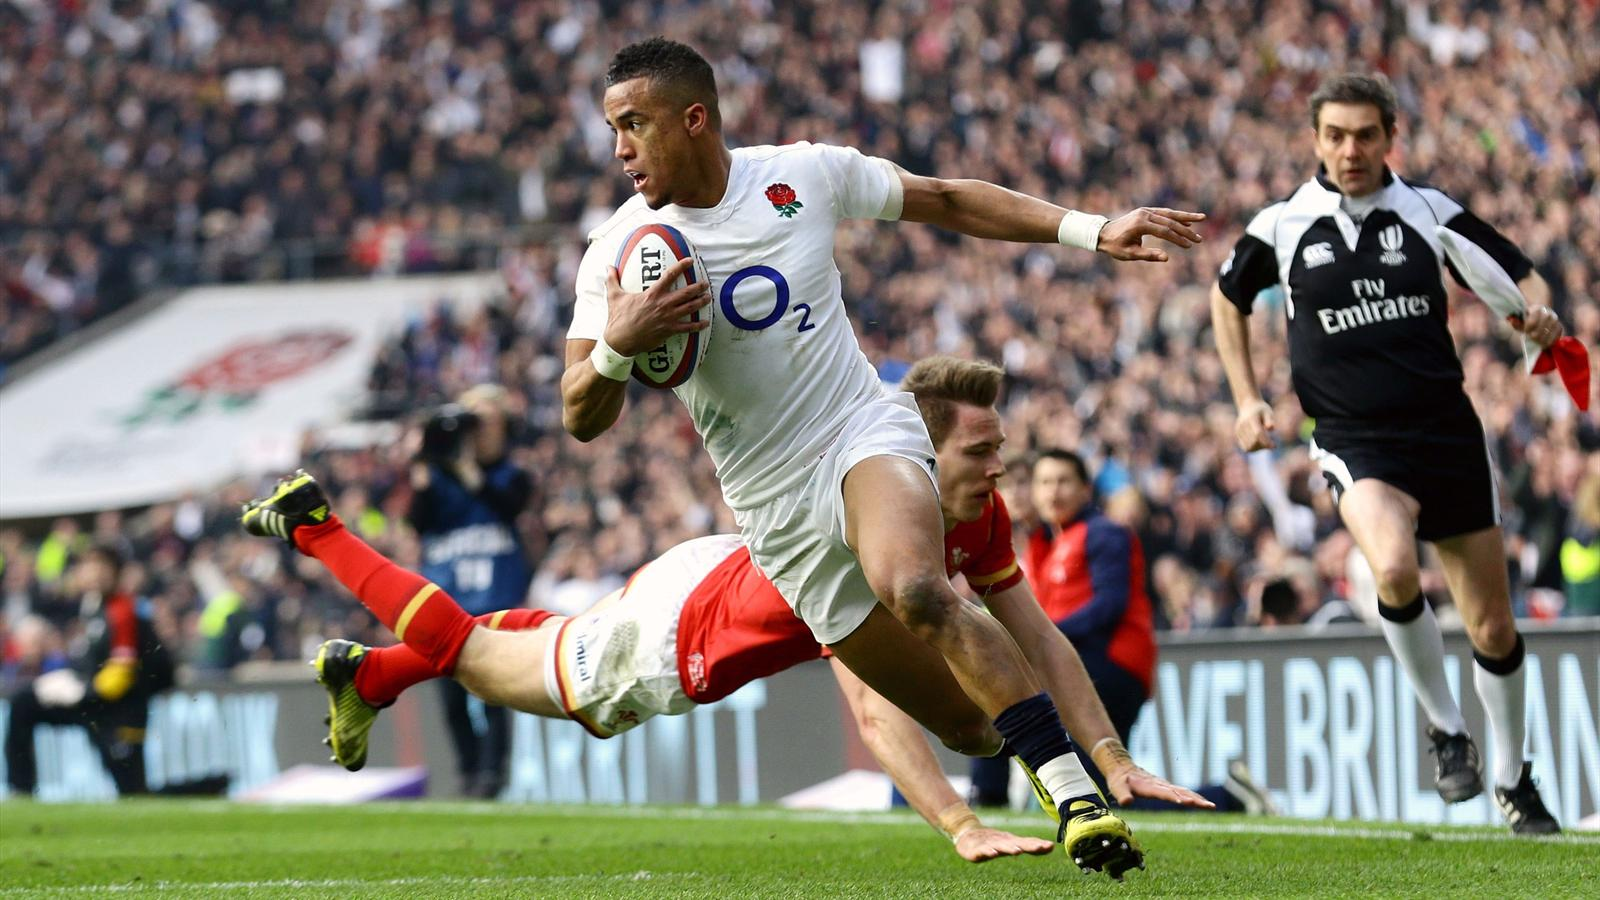 6 nations - angleterre-galles  25-21